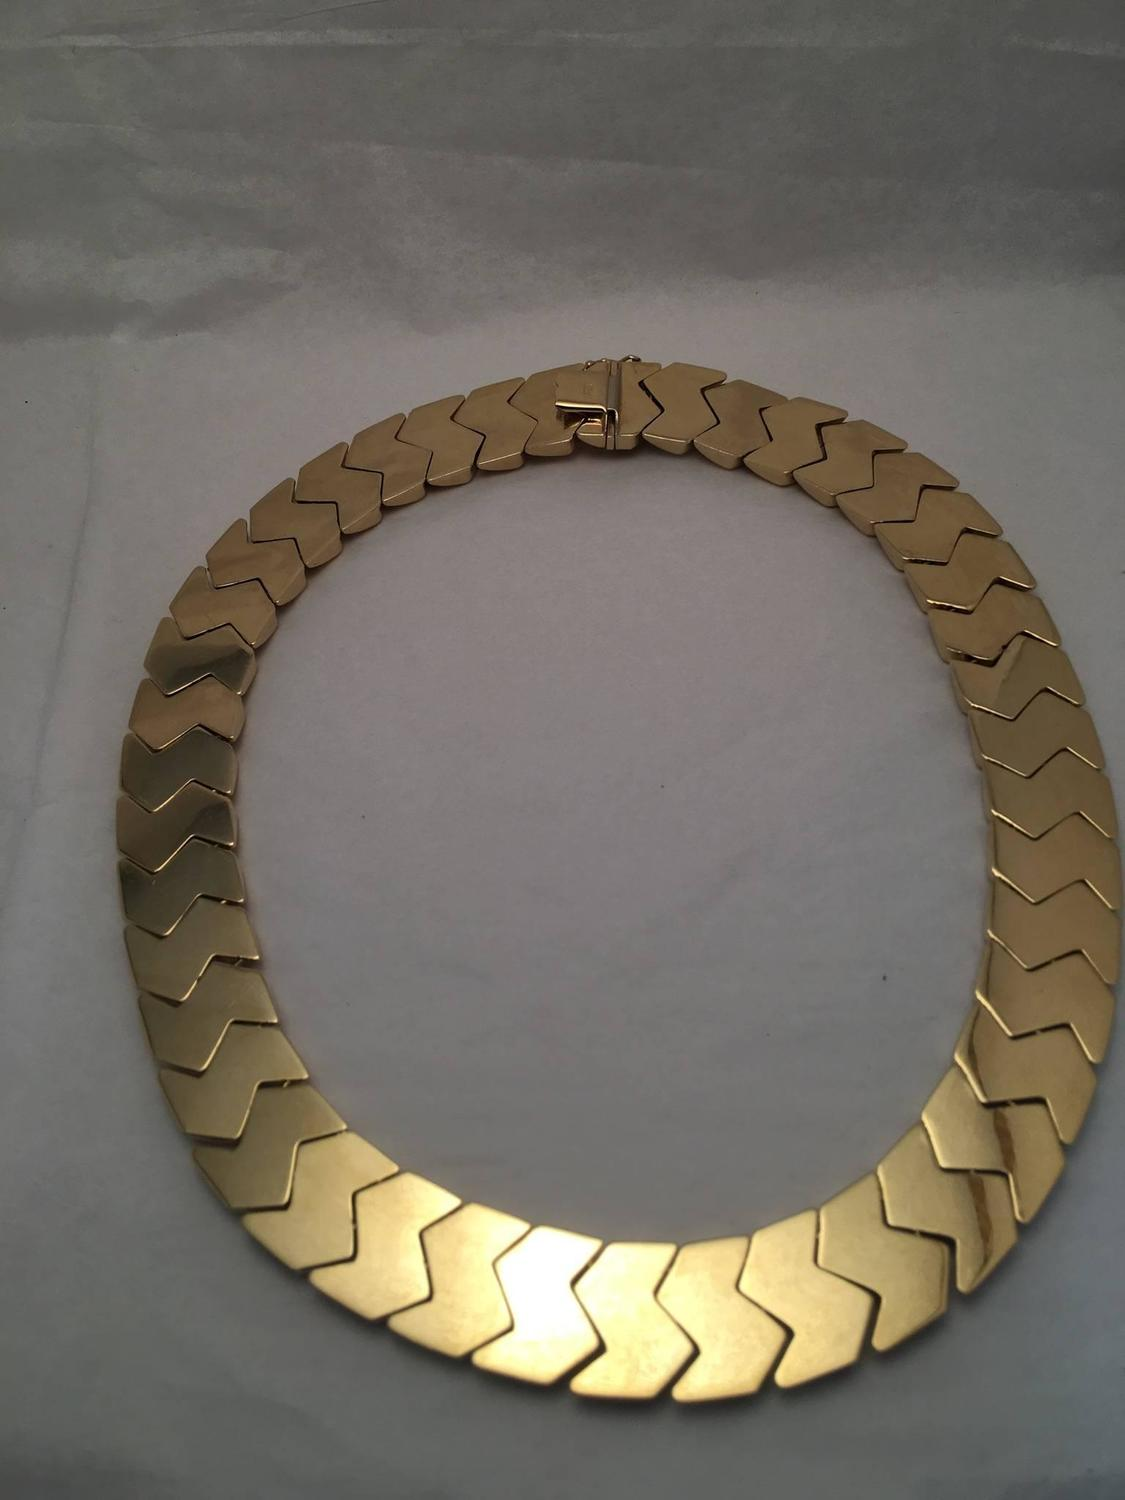 Basket Weaving Jewelry : Beautiful italian gold basket weave necklace for sale at